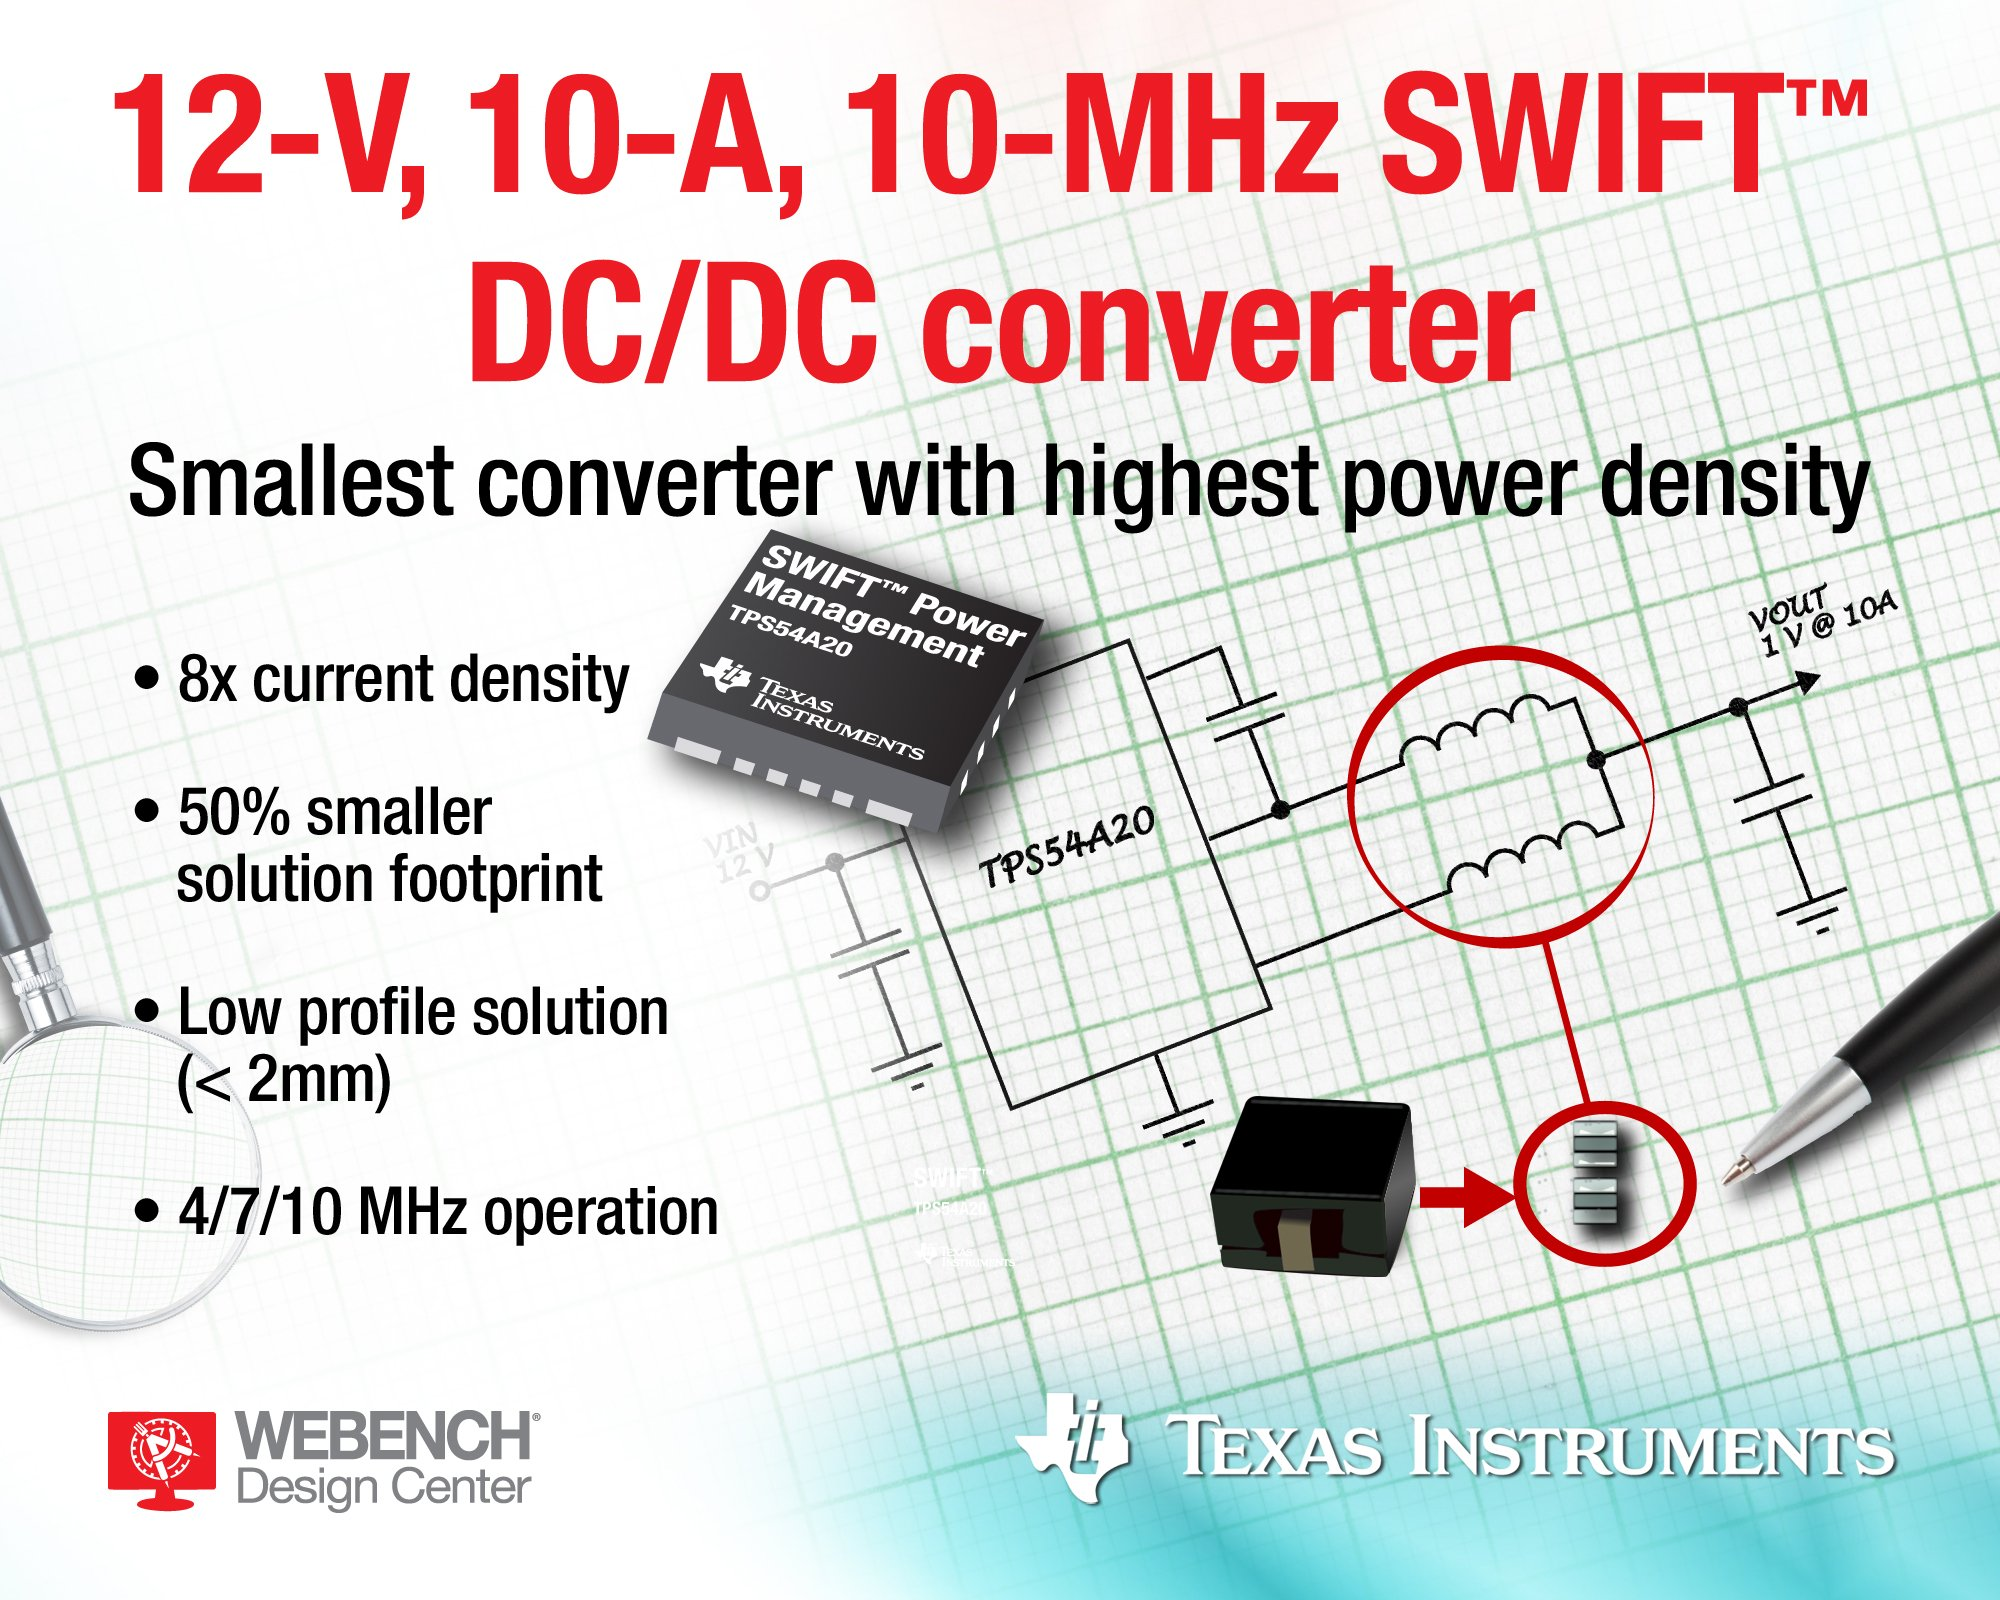 Outpouring Of Power Supply Devices Continues With Tiny Low Voltage Cheap High Current Dc To Invertercircuit Diagram World The Tps54a20 From Texas Instruments Is A 12 V Single Digit